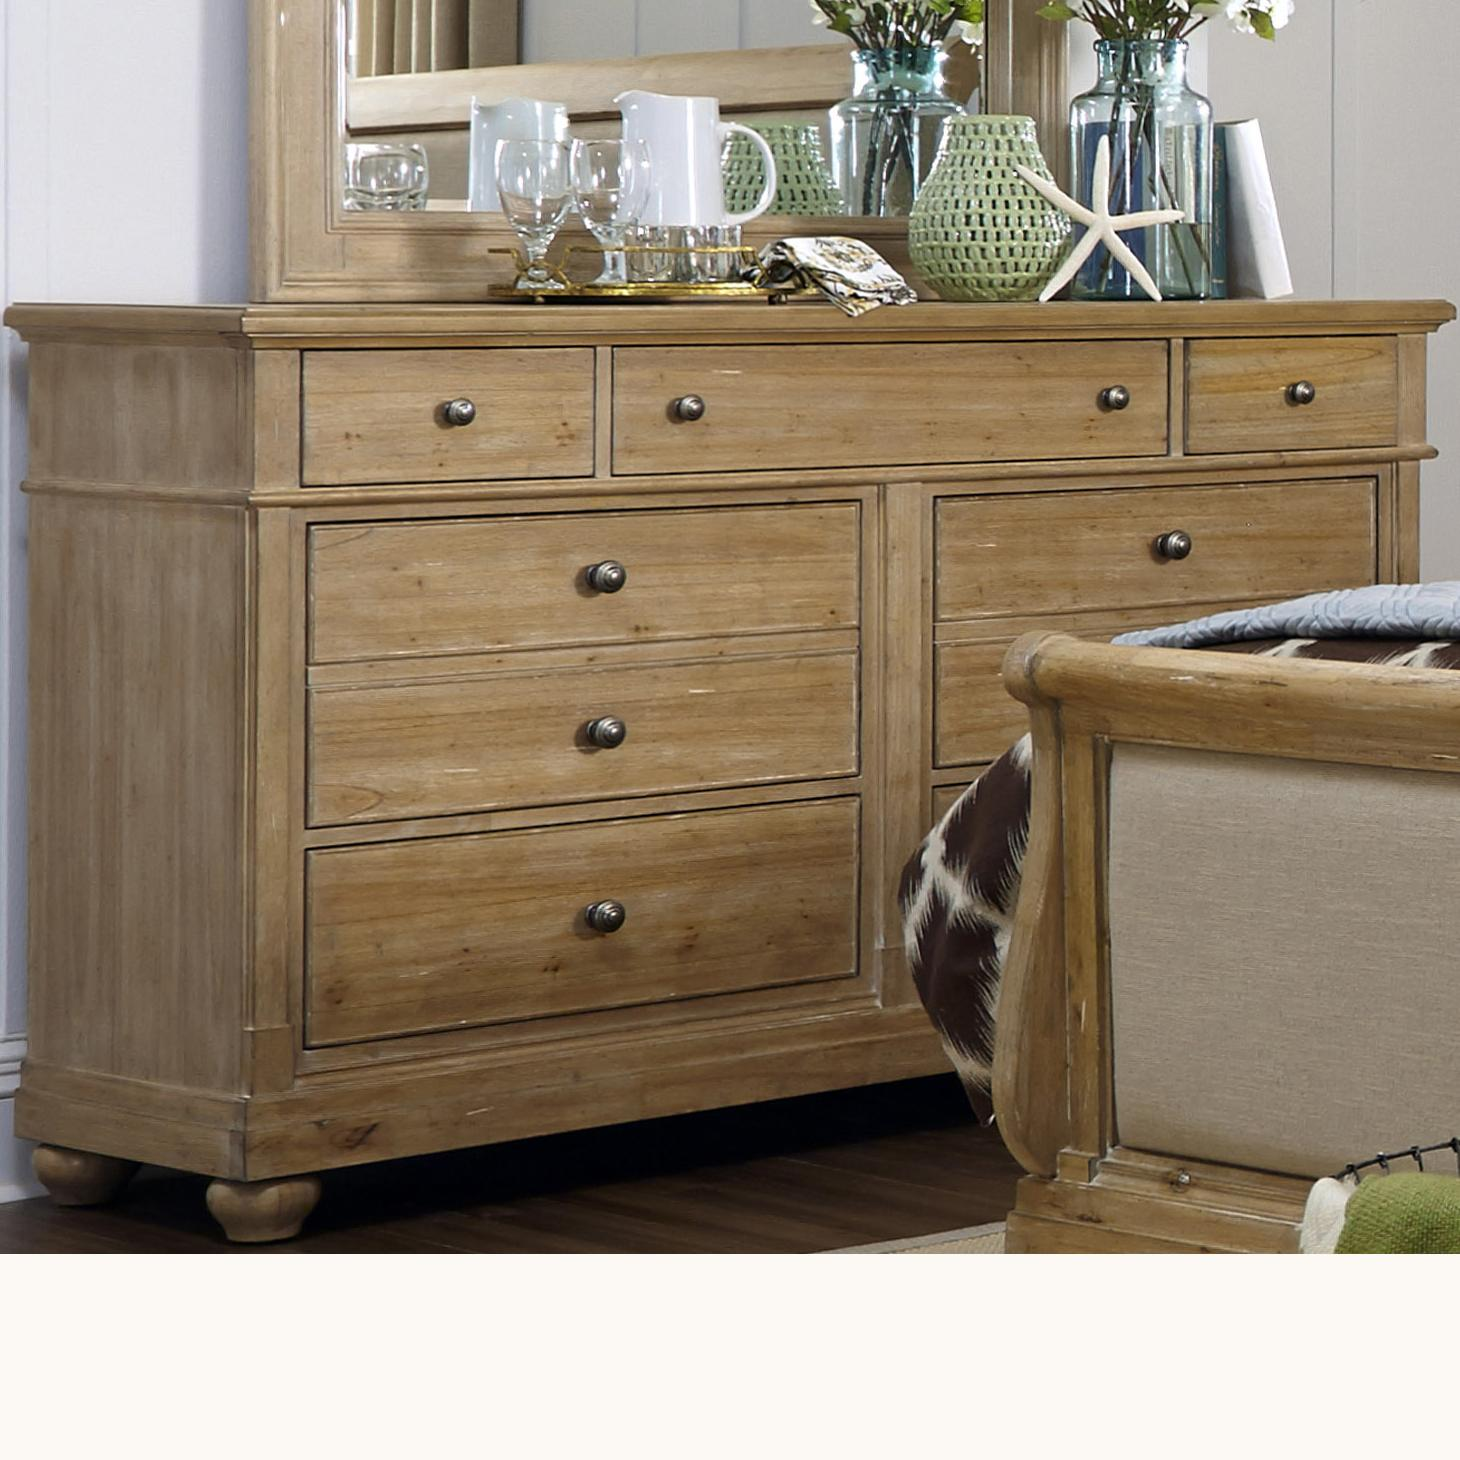 Liberty Furniture Harbor View Dresser - Item Number: 531-BR31